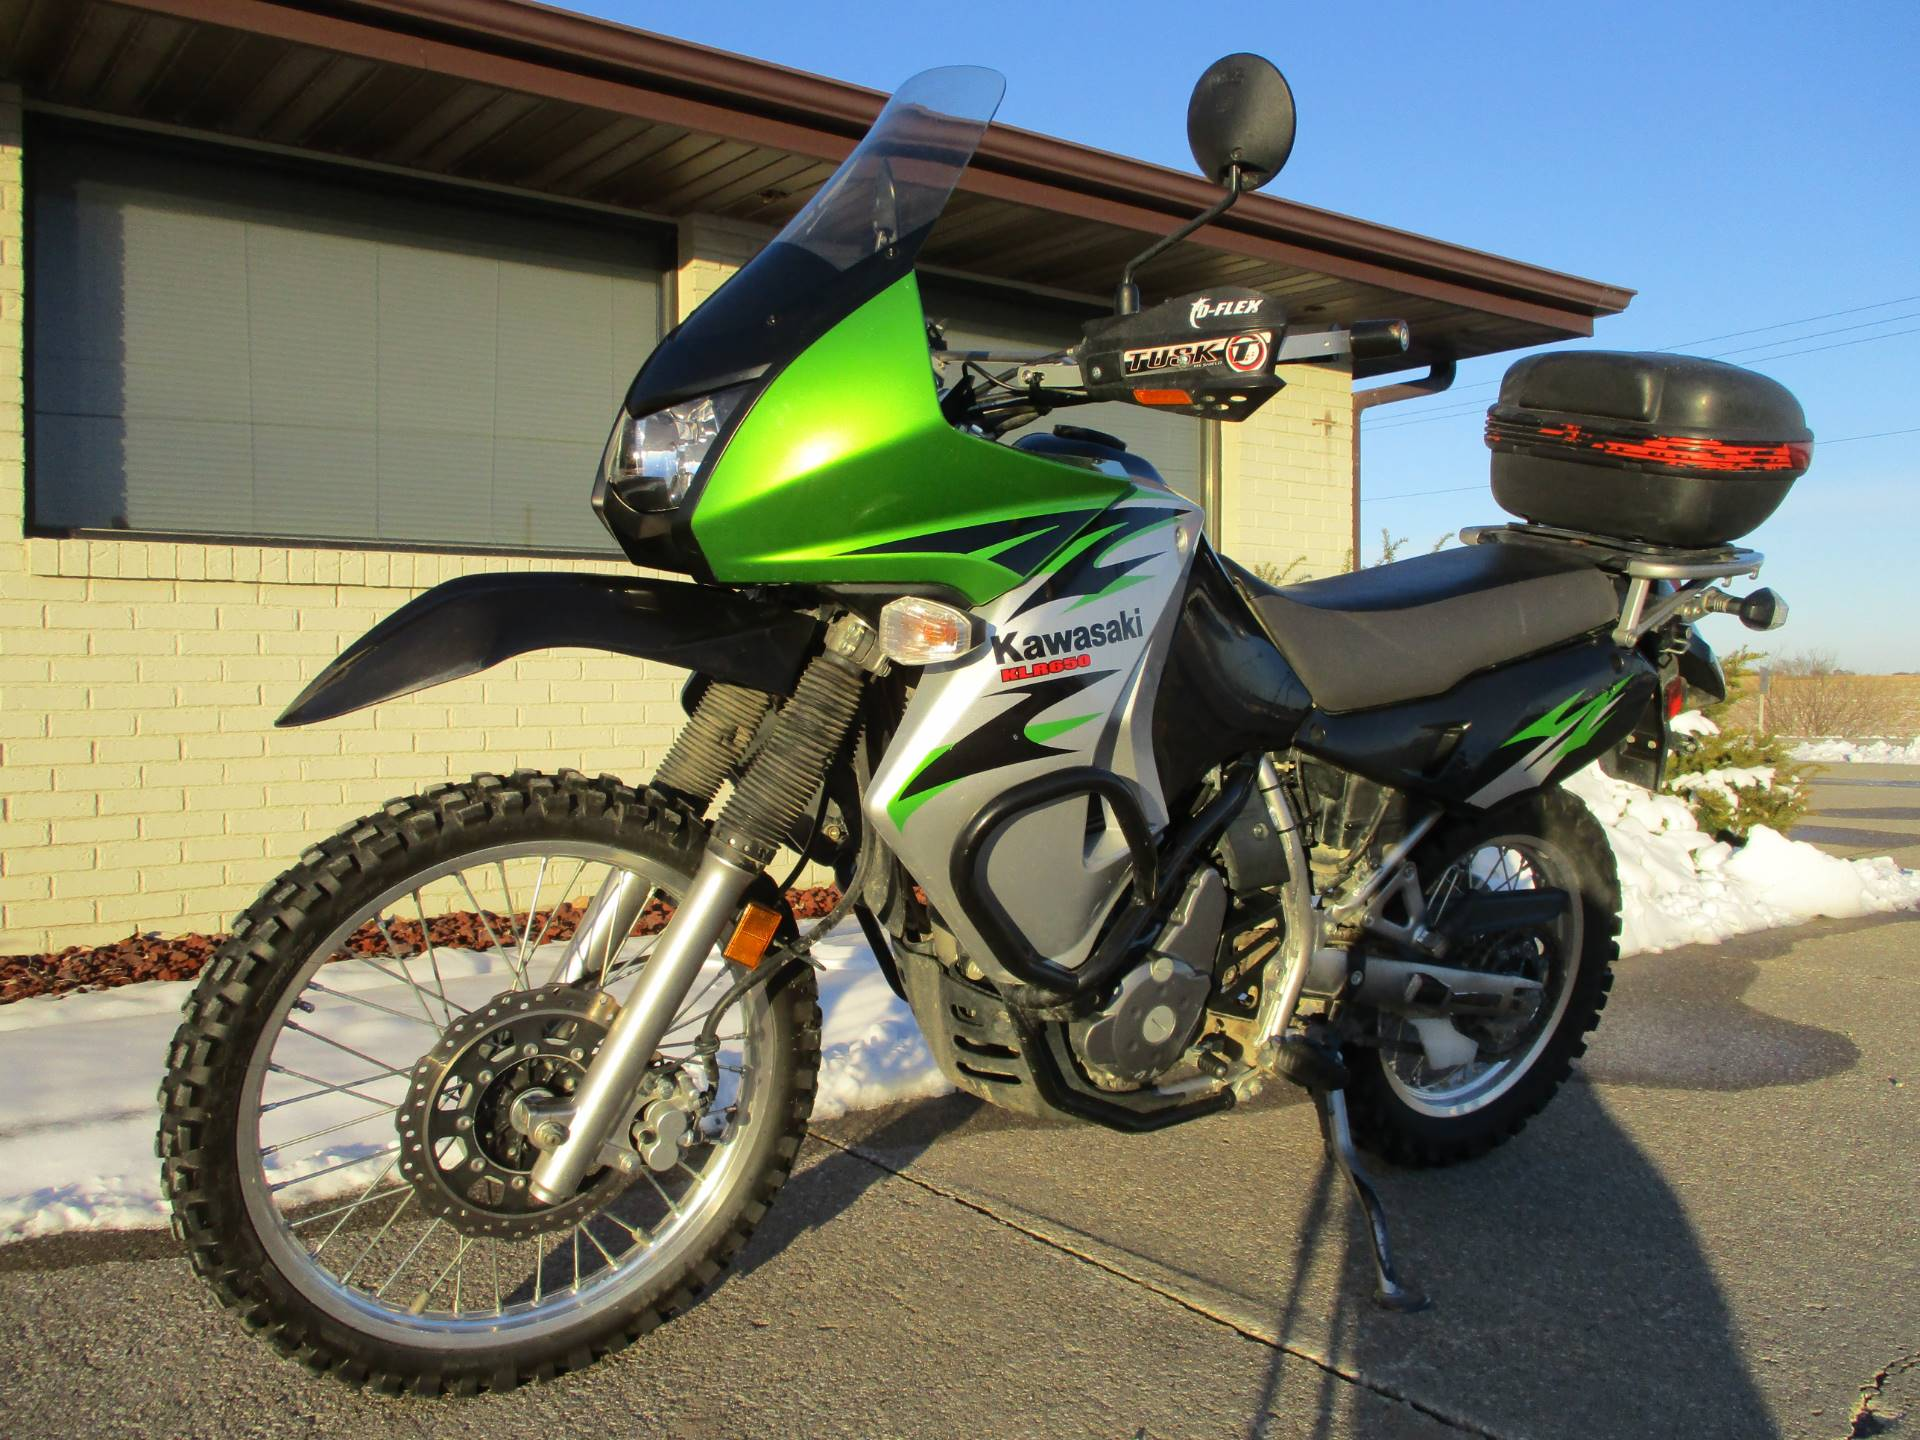 2008 Kawasaki KLR650 in Winterset, Iowa - Photo 4